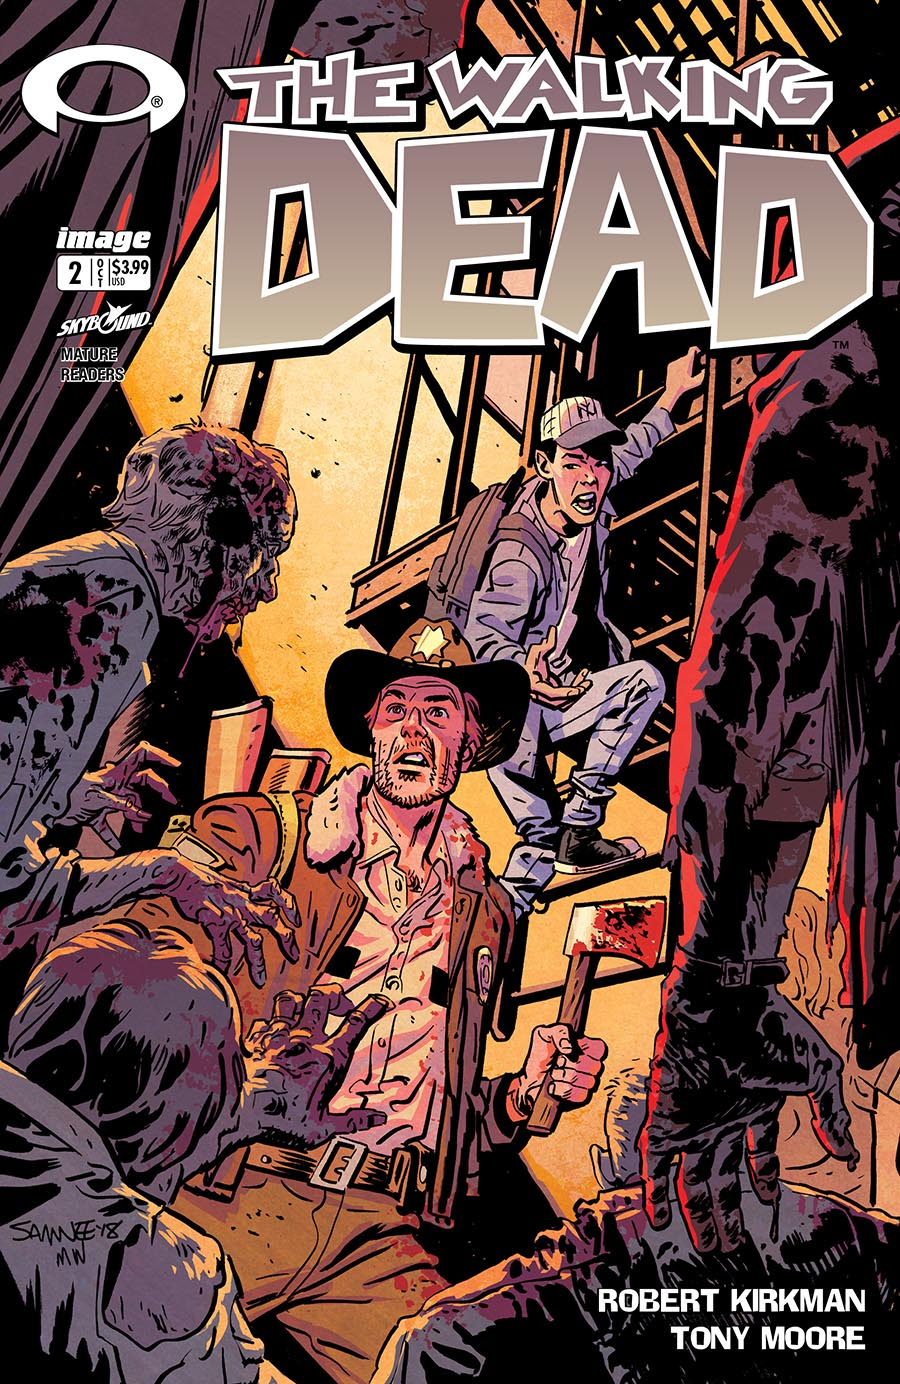 Artist: Chris Samnee First appearance of Carl, Lori, Grimes, Glenn, Andrea